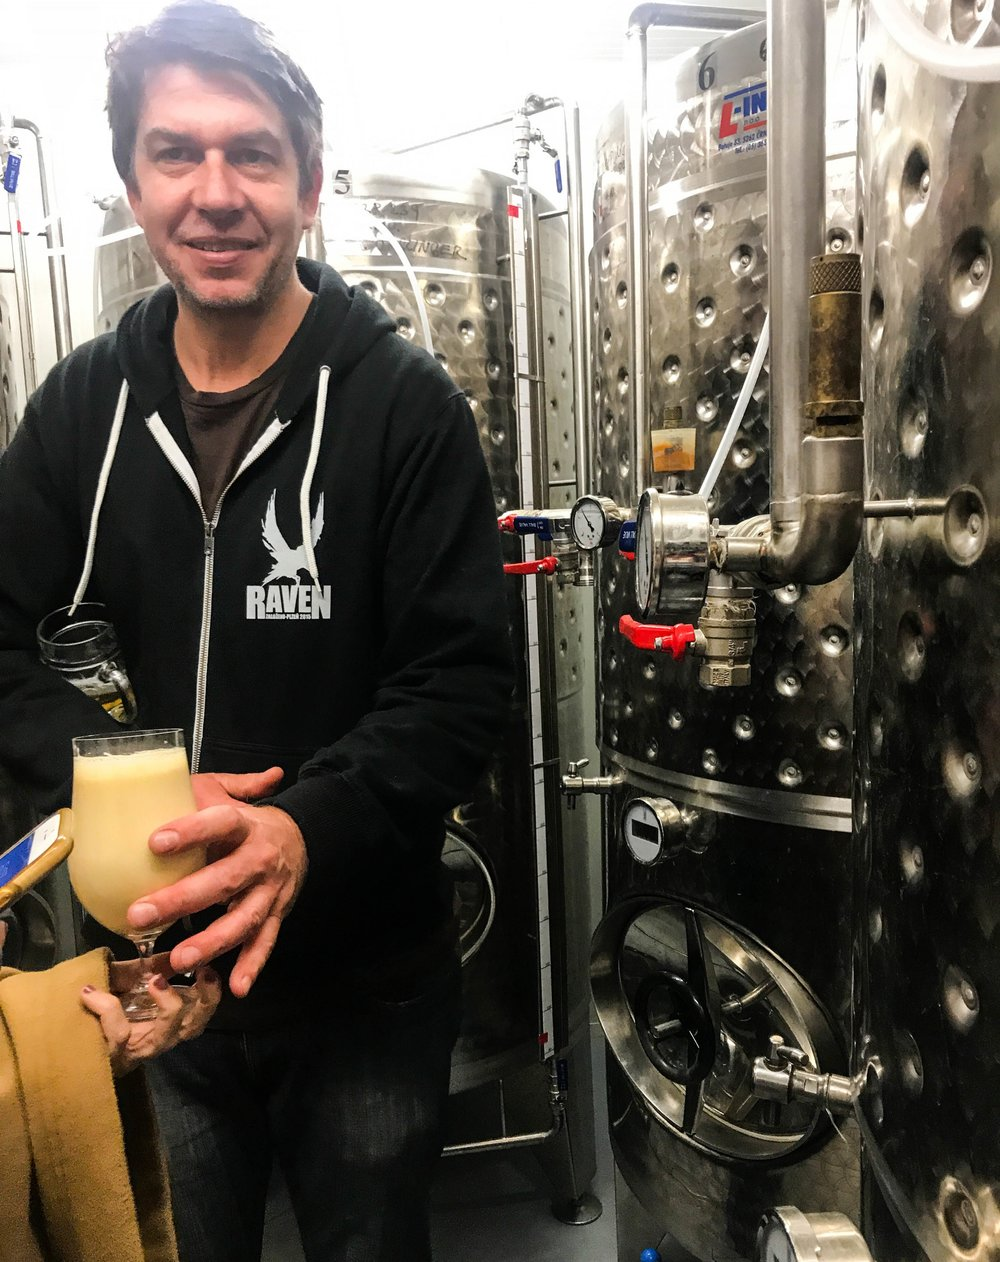 Mike, Raven's owner and Brewmaster